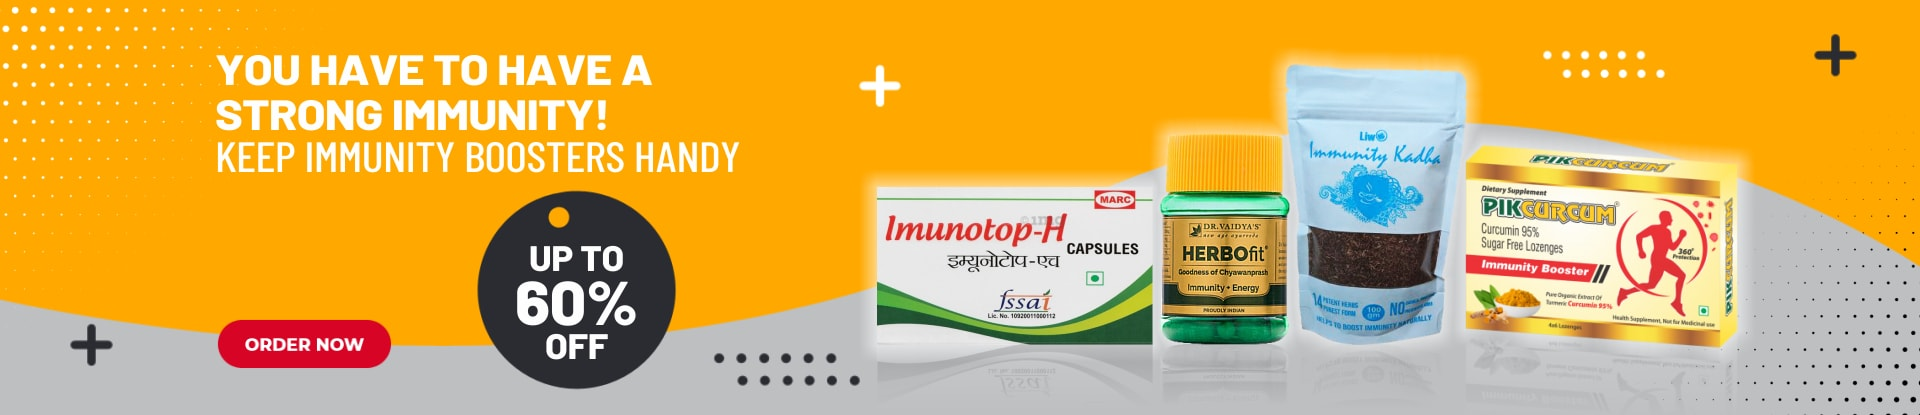 Best Immunity Booster Product